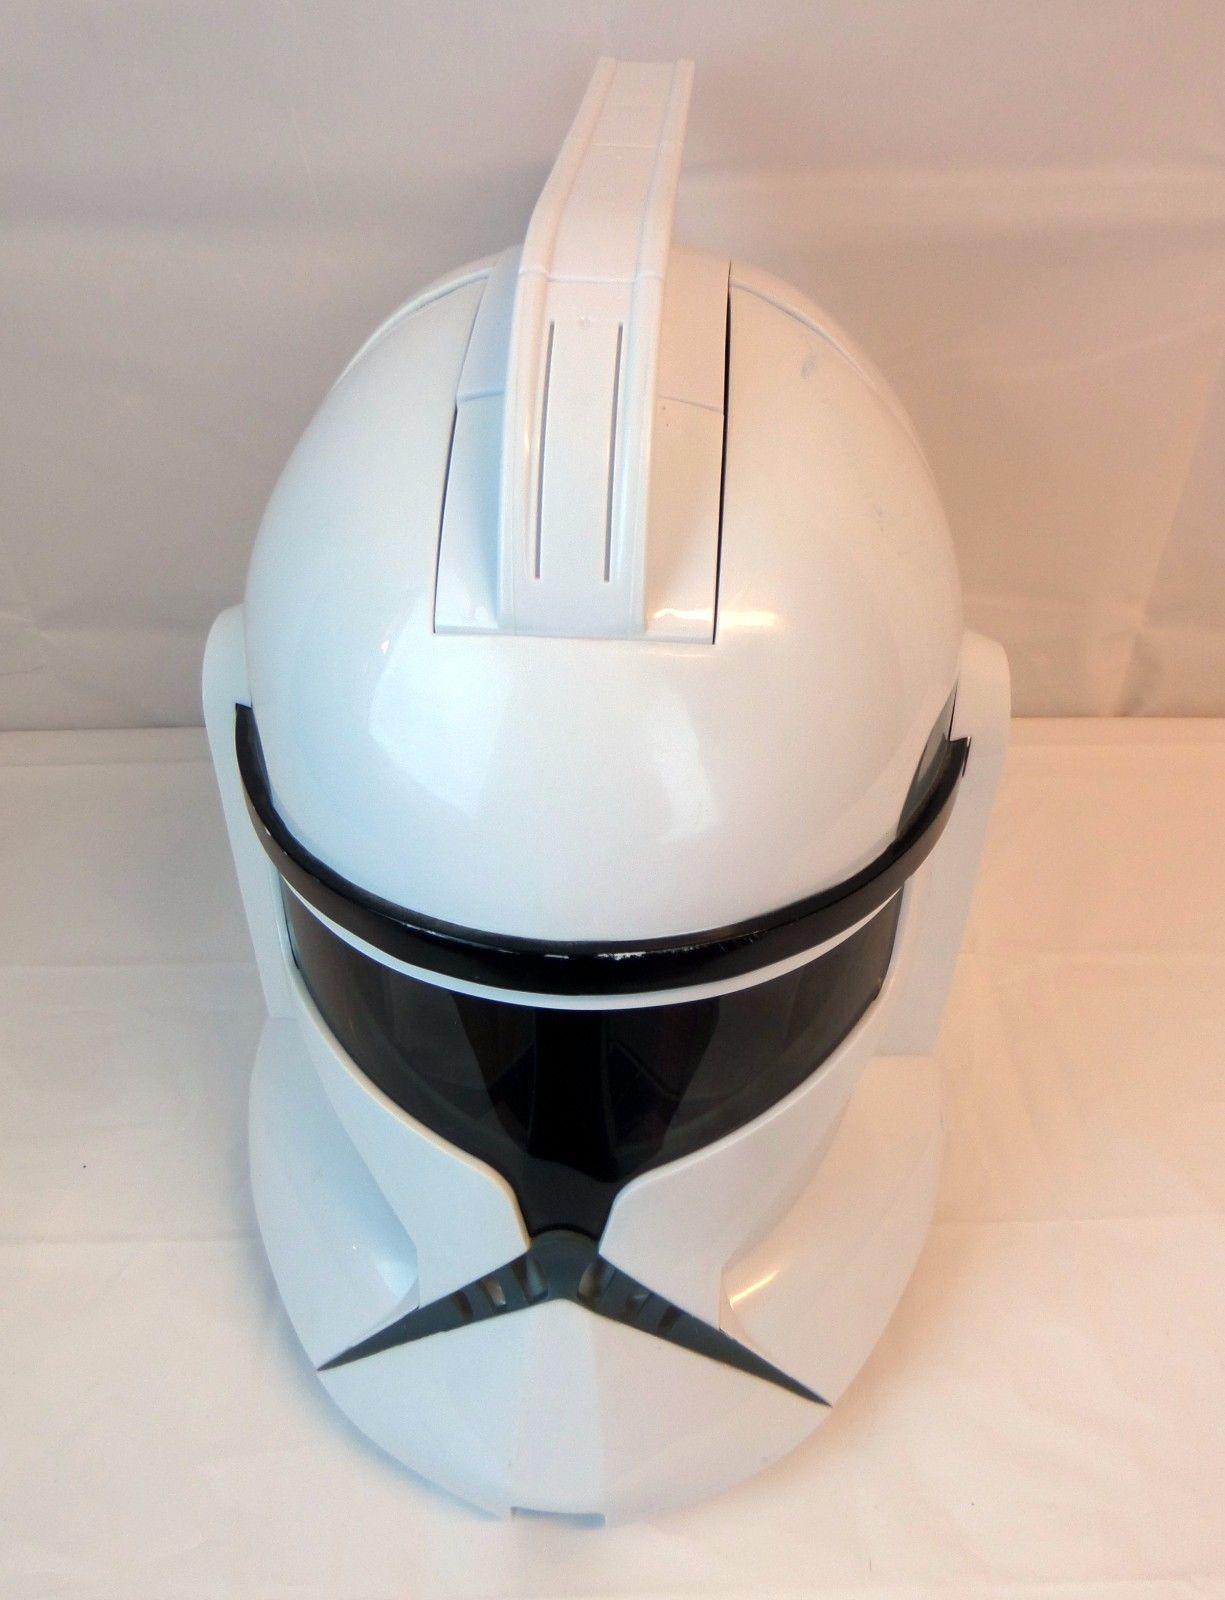 Star Wars Clone Storm Trooper White Helmet Voice Sounds Hasbro Talking